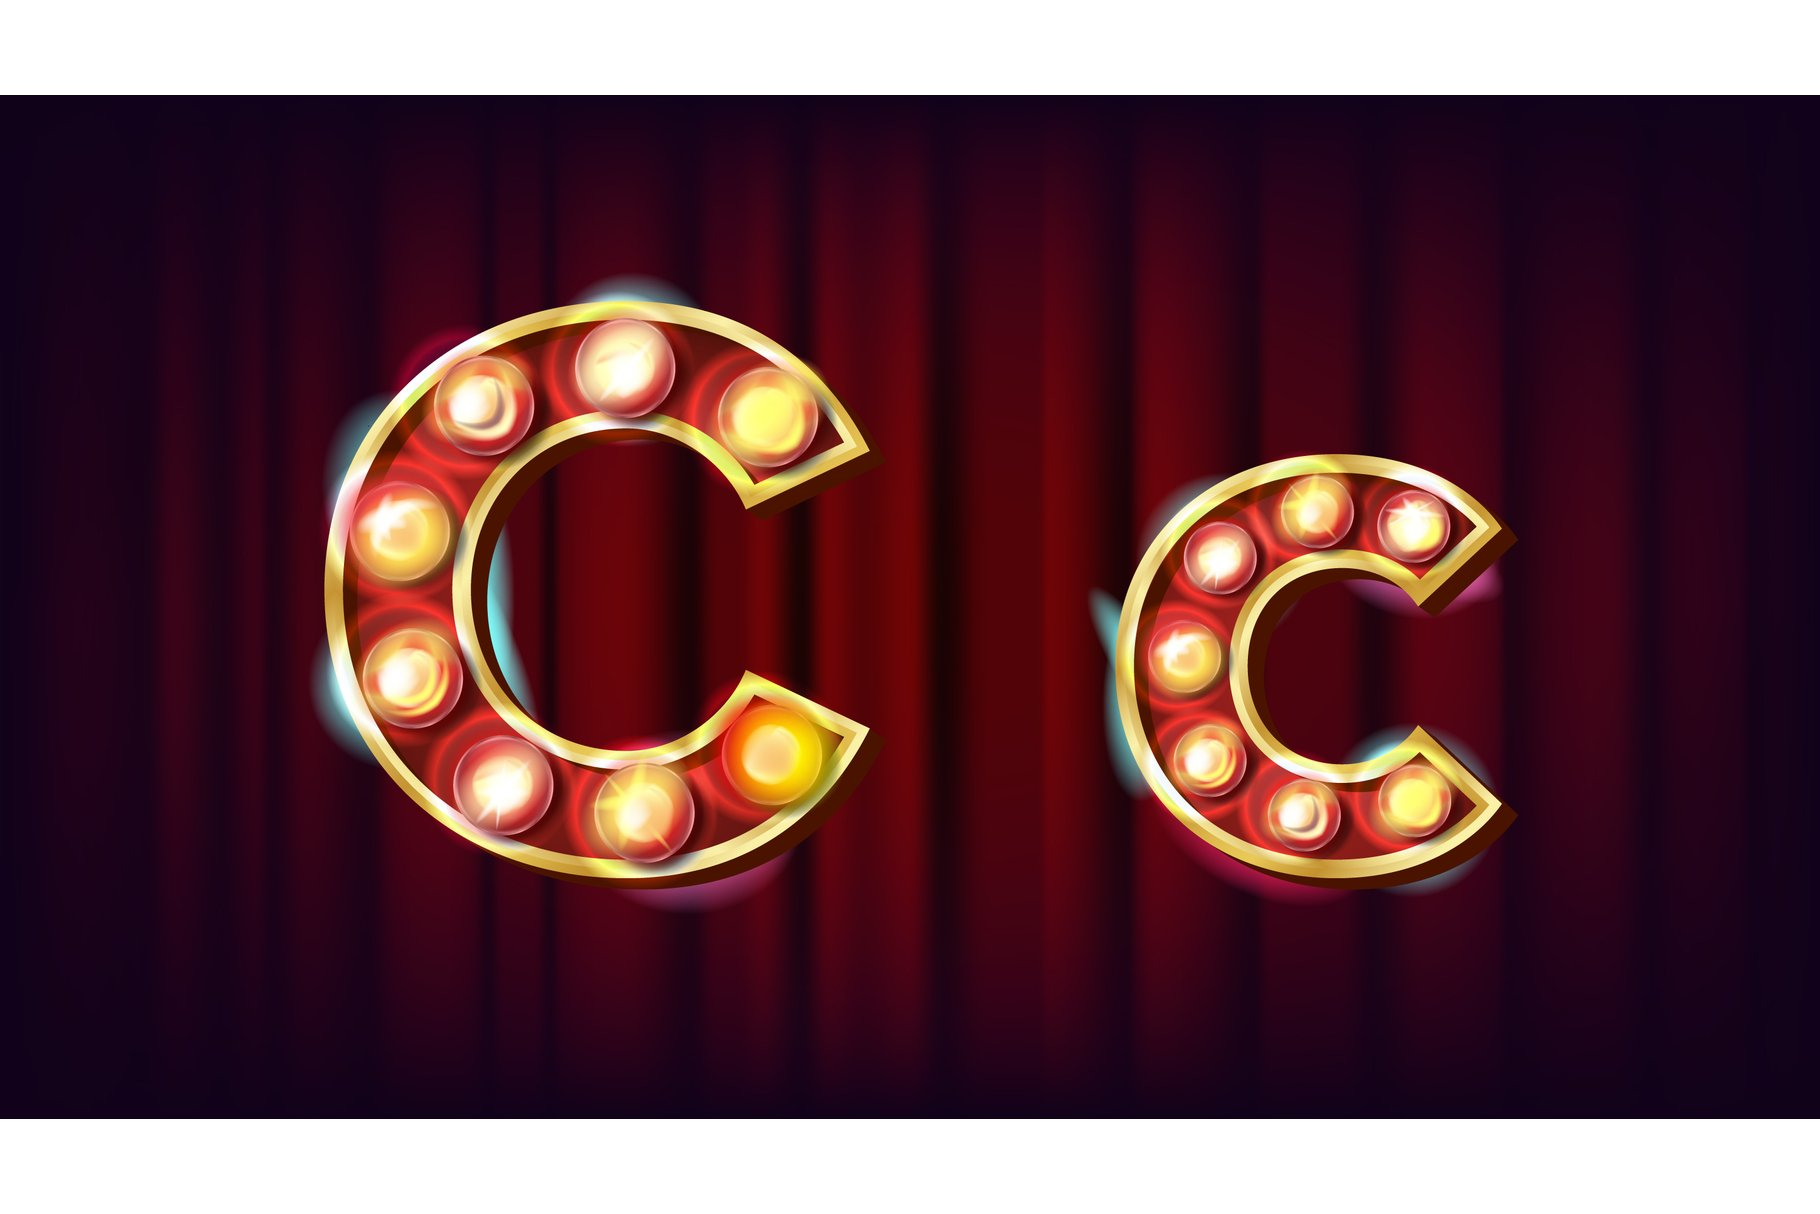 C Letter Vector. Capital example image 1